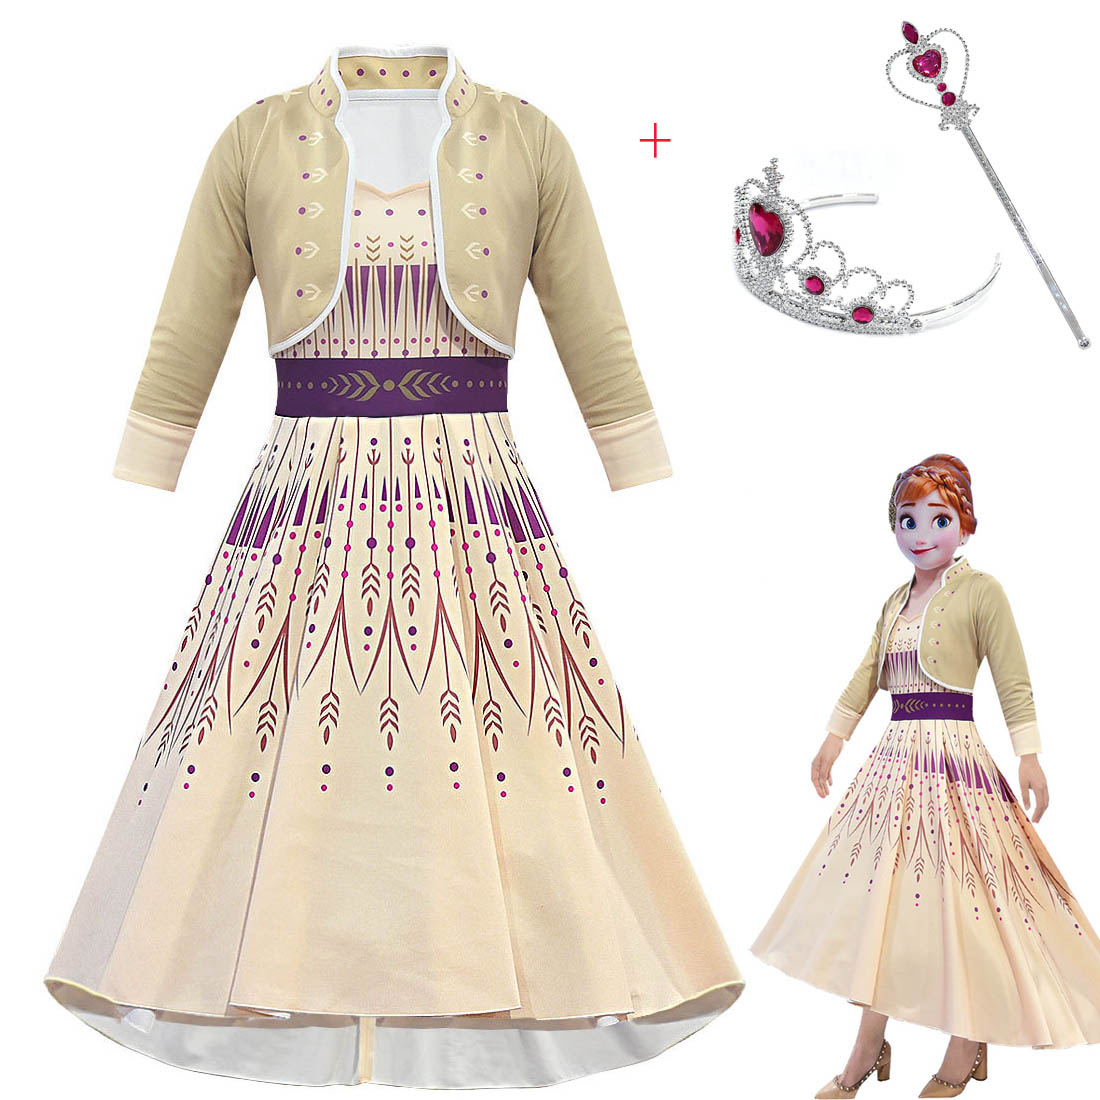 Frozen 2 Cosplay Girls Queen Anna Costume Princess Dresses With Shawl Funny Party Vestidos Fantasia Kids Clothing Set For Girl